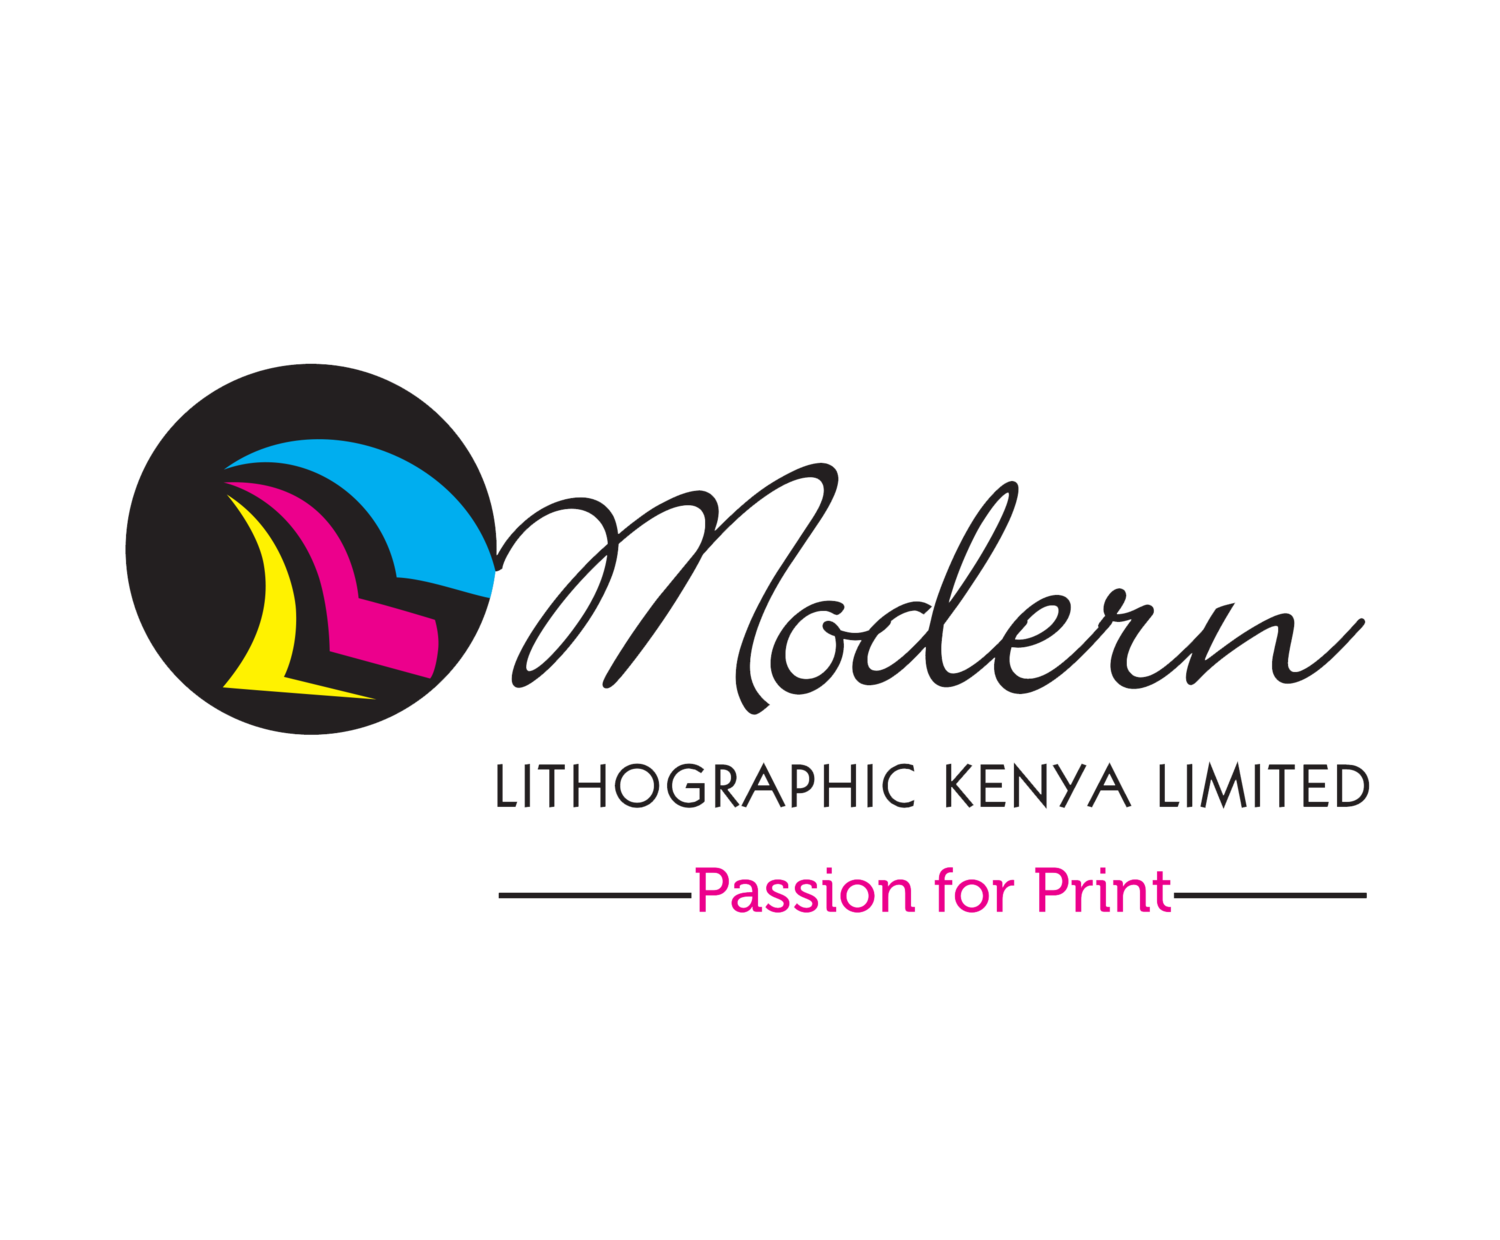 Modern Lithographic (K) Ltd